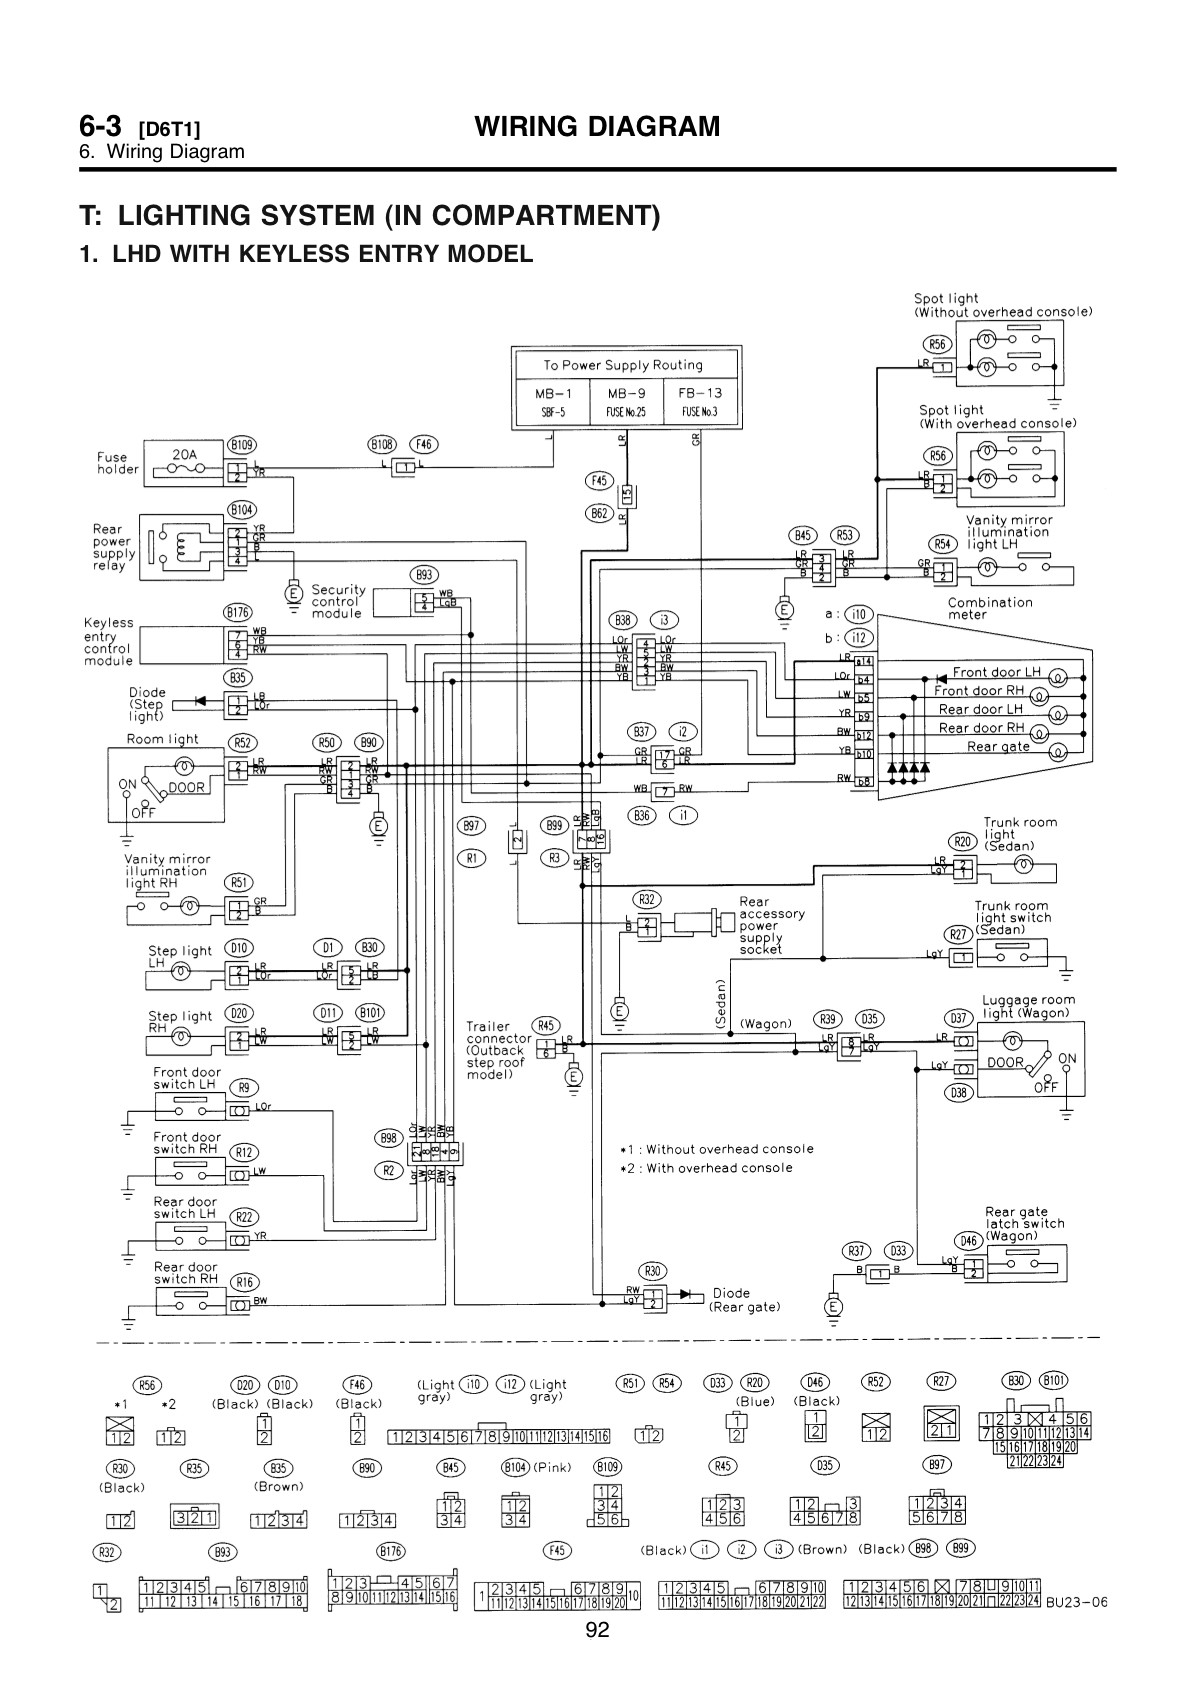 94 Subaru Legacy Wiring Diagram Data 1997 Corvette 93 Impreza